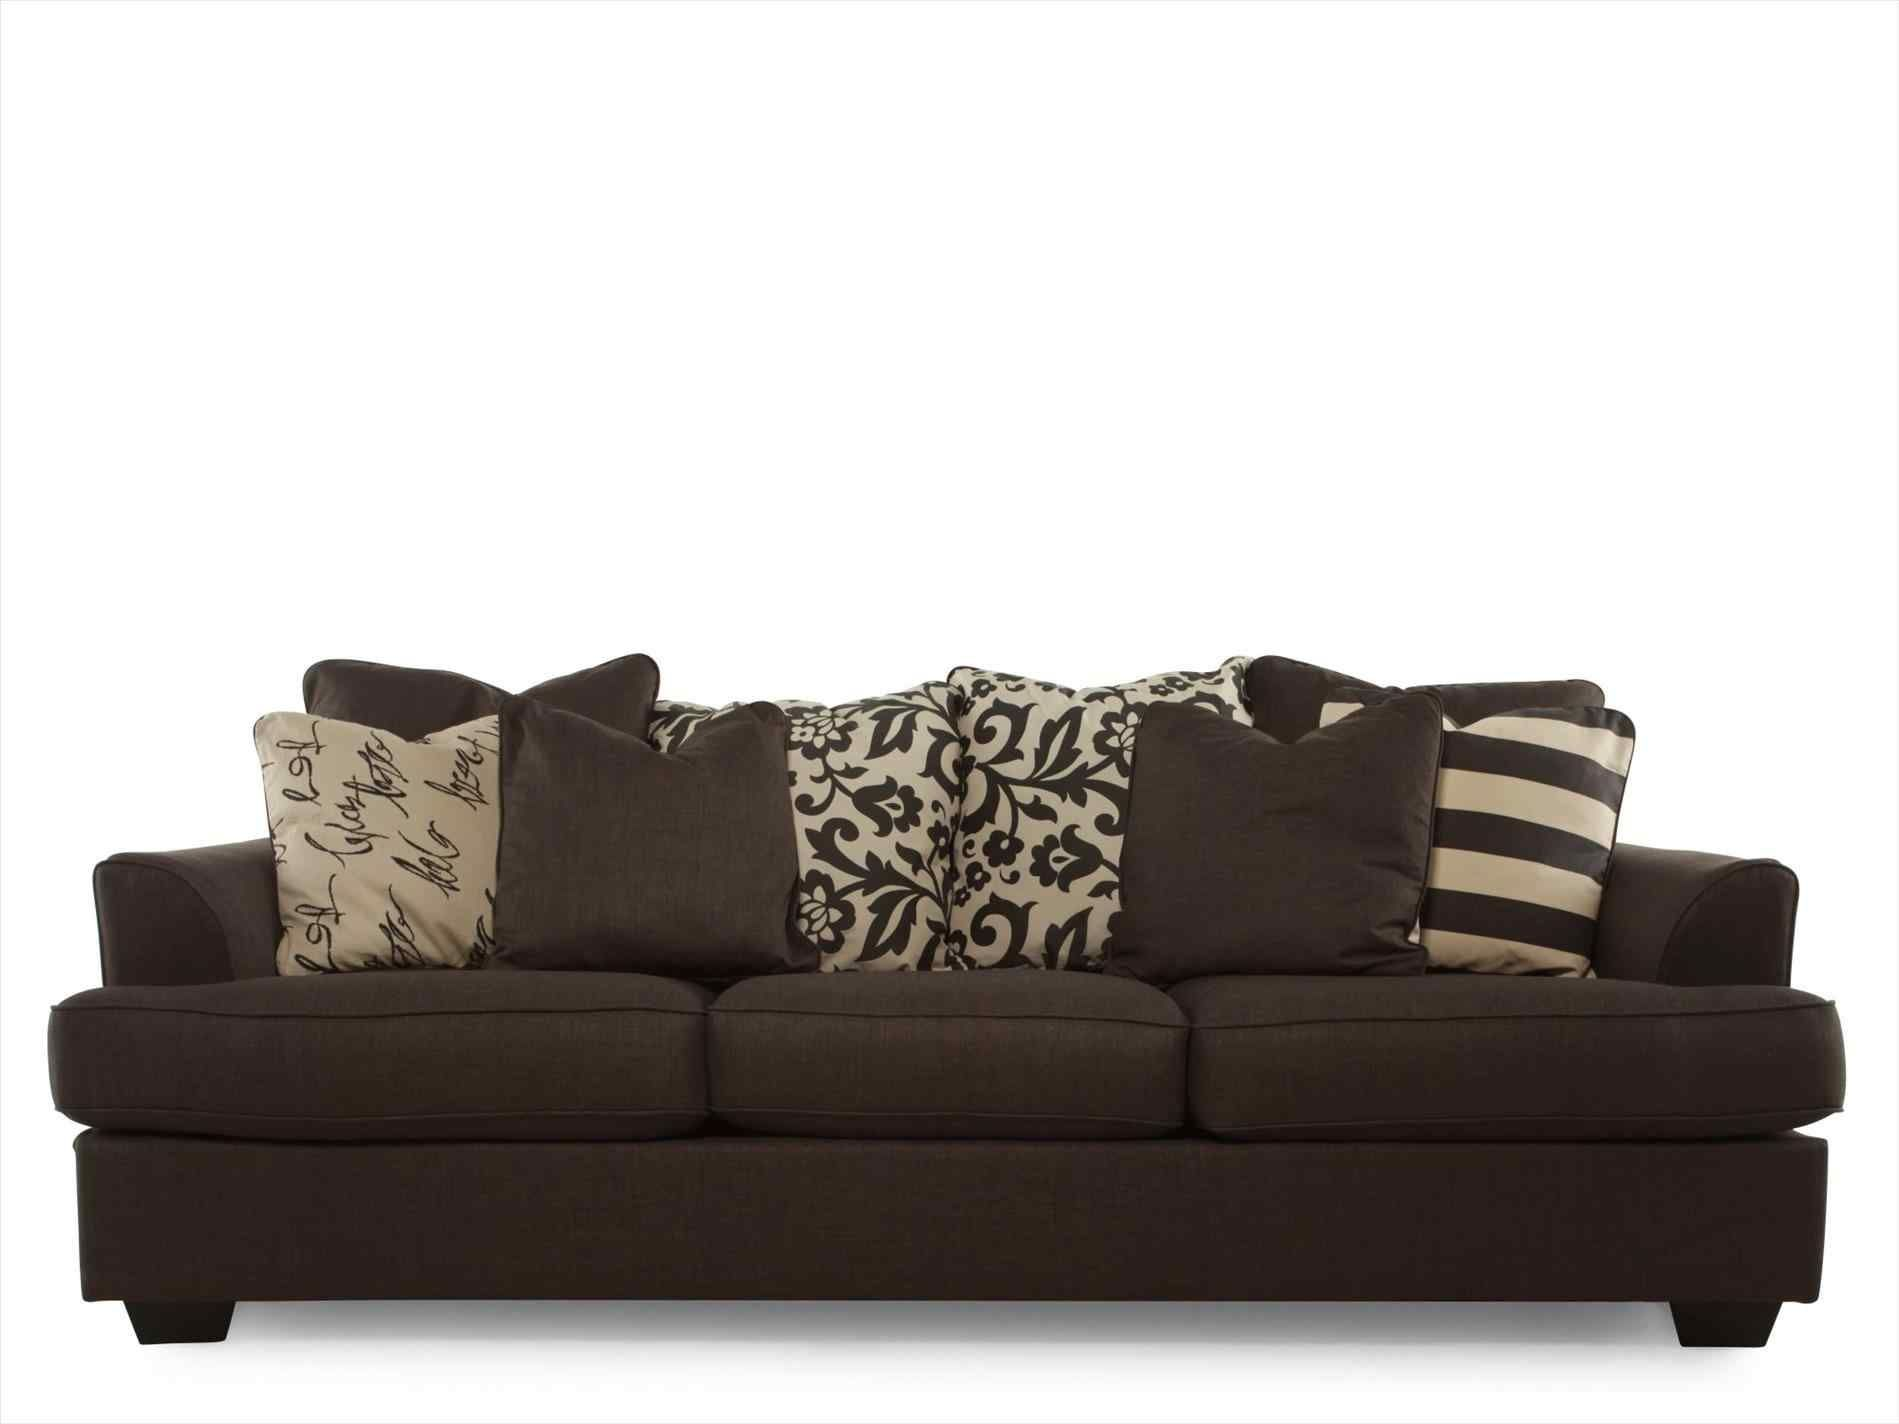 Sectional Couches Fresno Ca  sc 1 st  Pinterest : sectional sofas fresno ca - Sectionals, Sofas & Couches